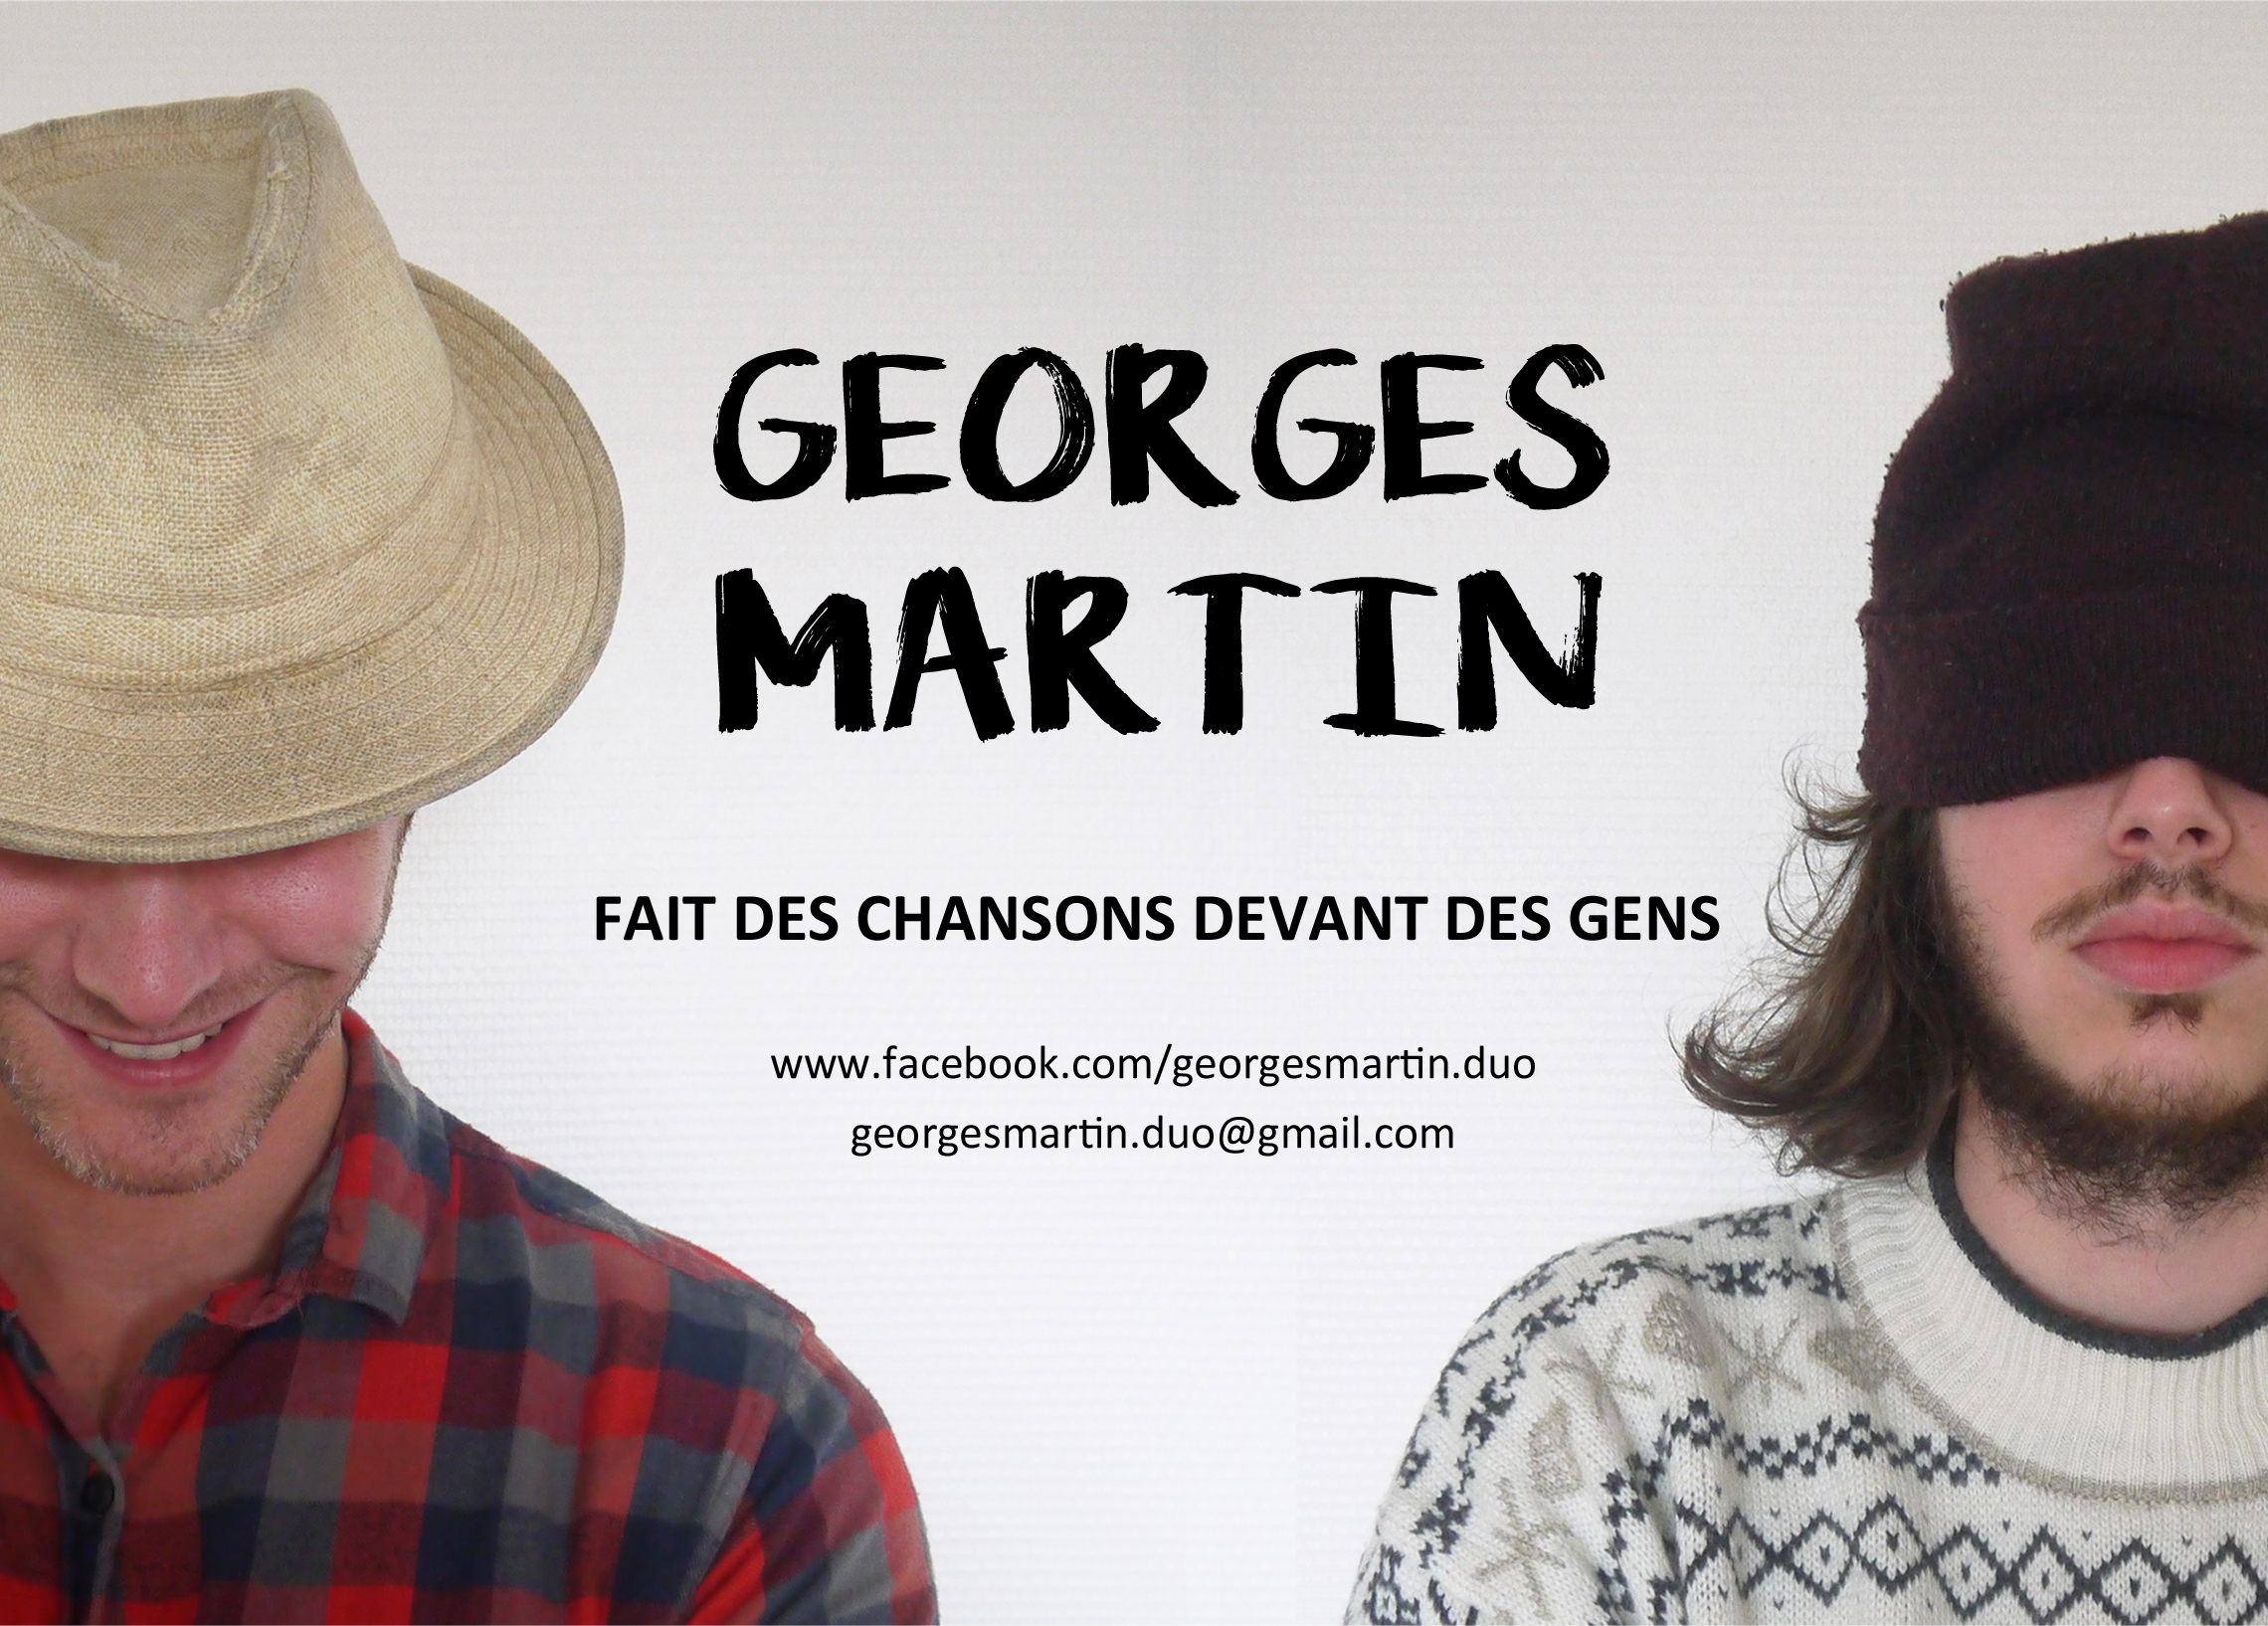 georges martin A6